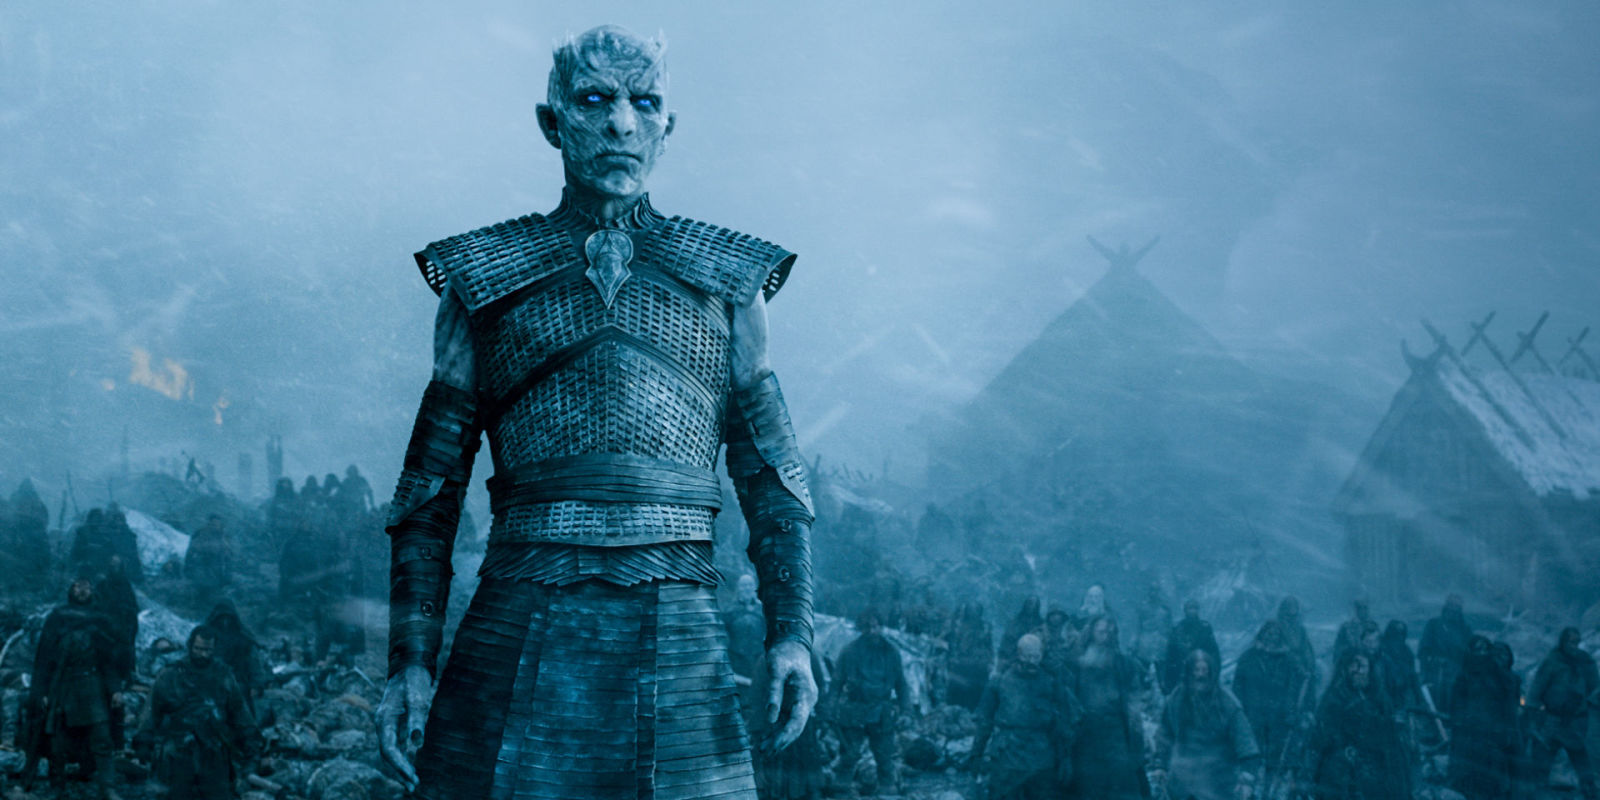 landscape-ustv-game-of-thrones-whitewalkers